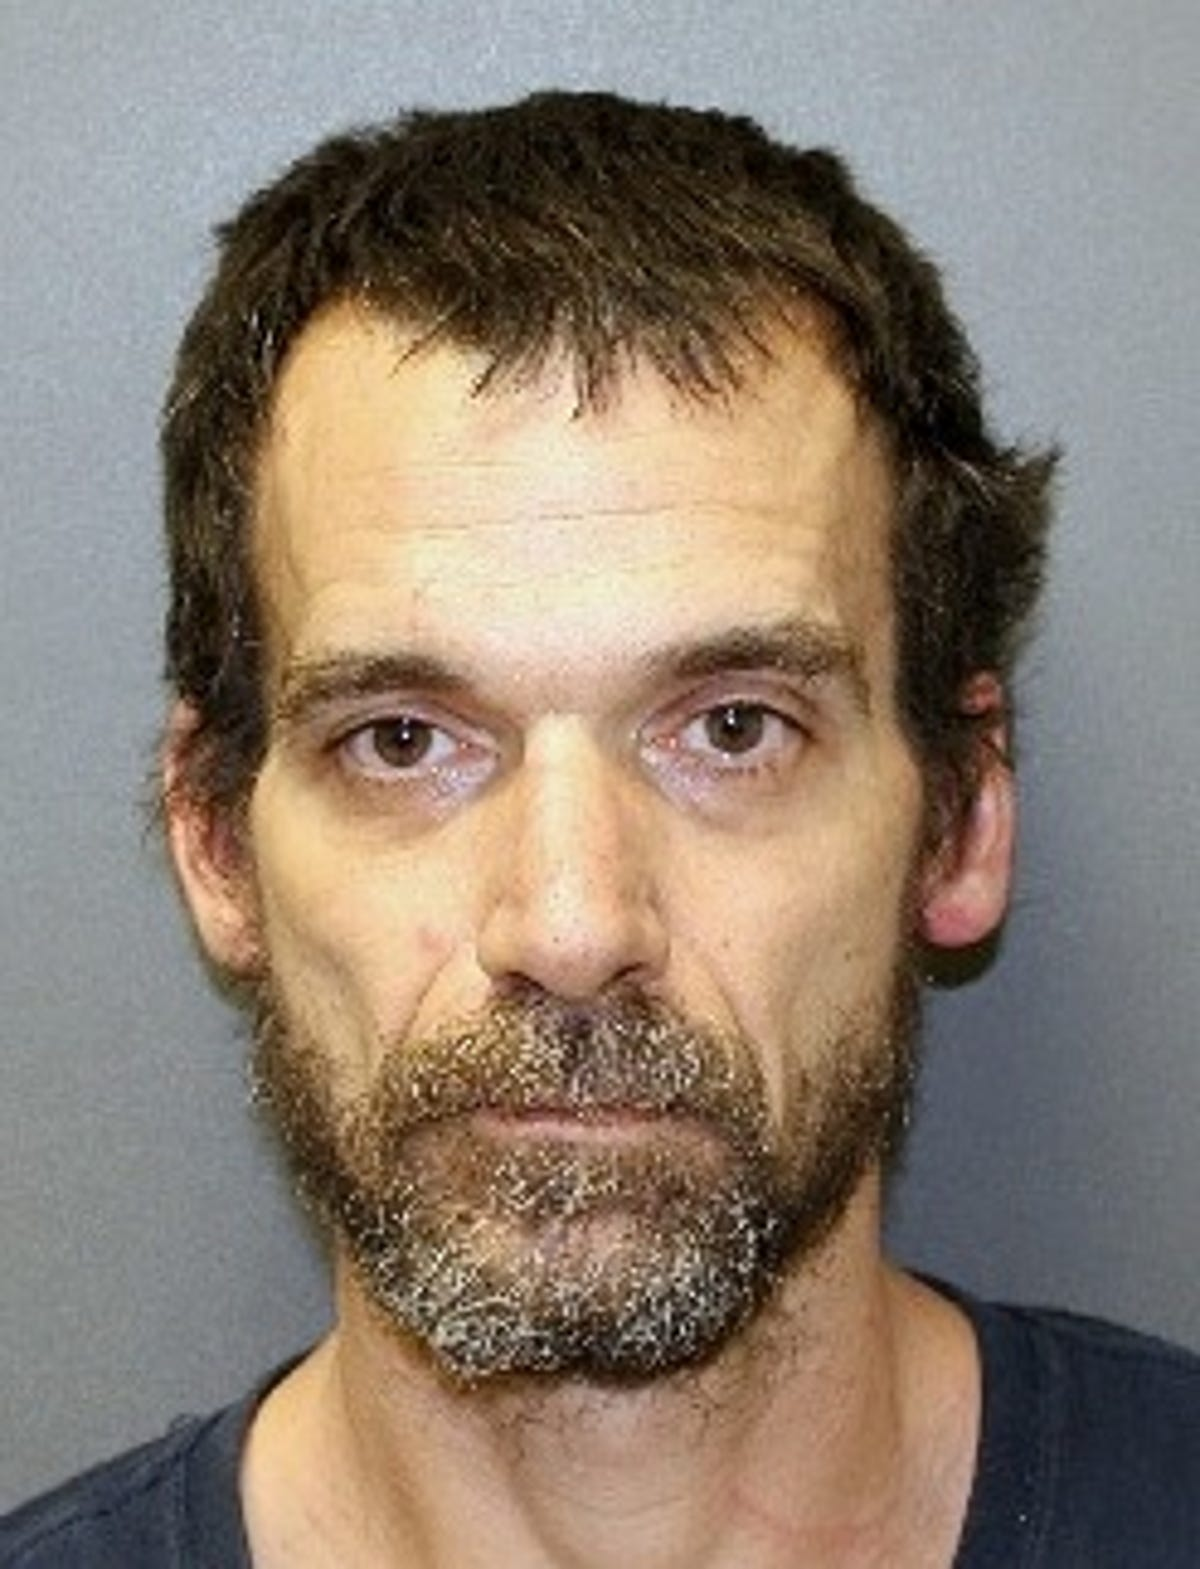 Corning meth lab find leads to arrests